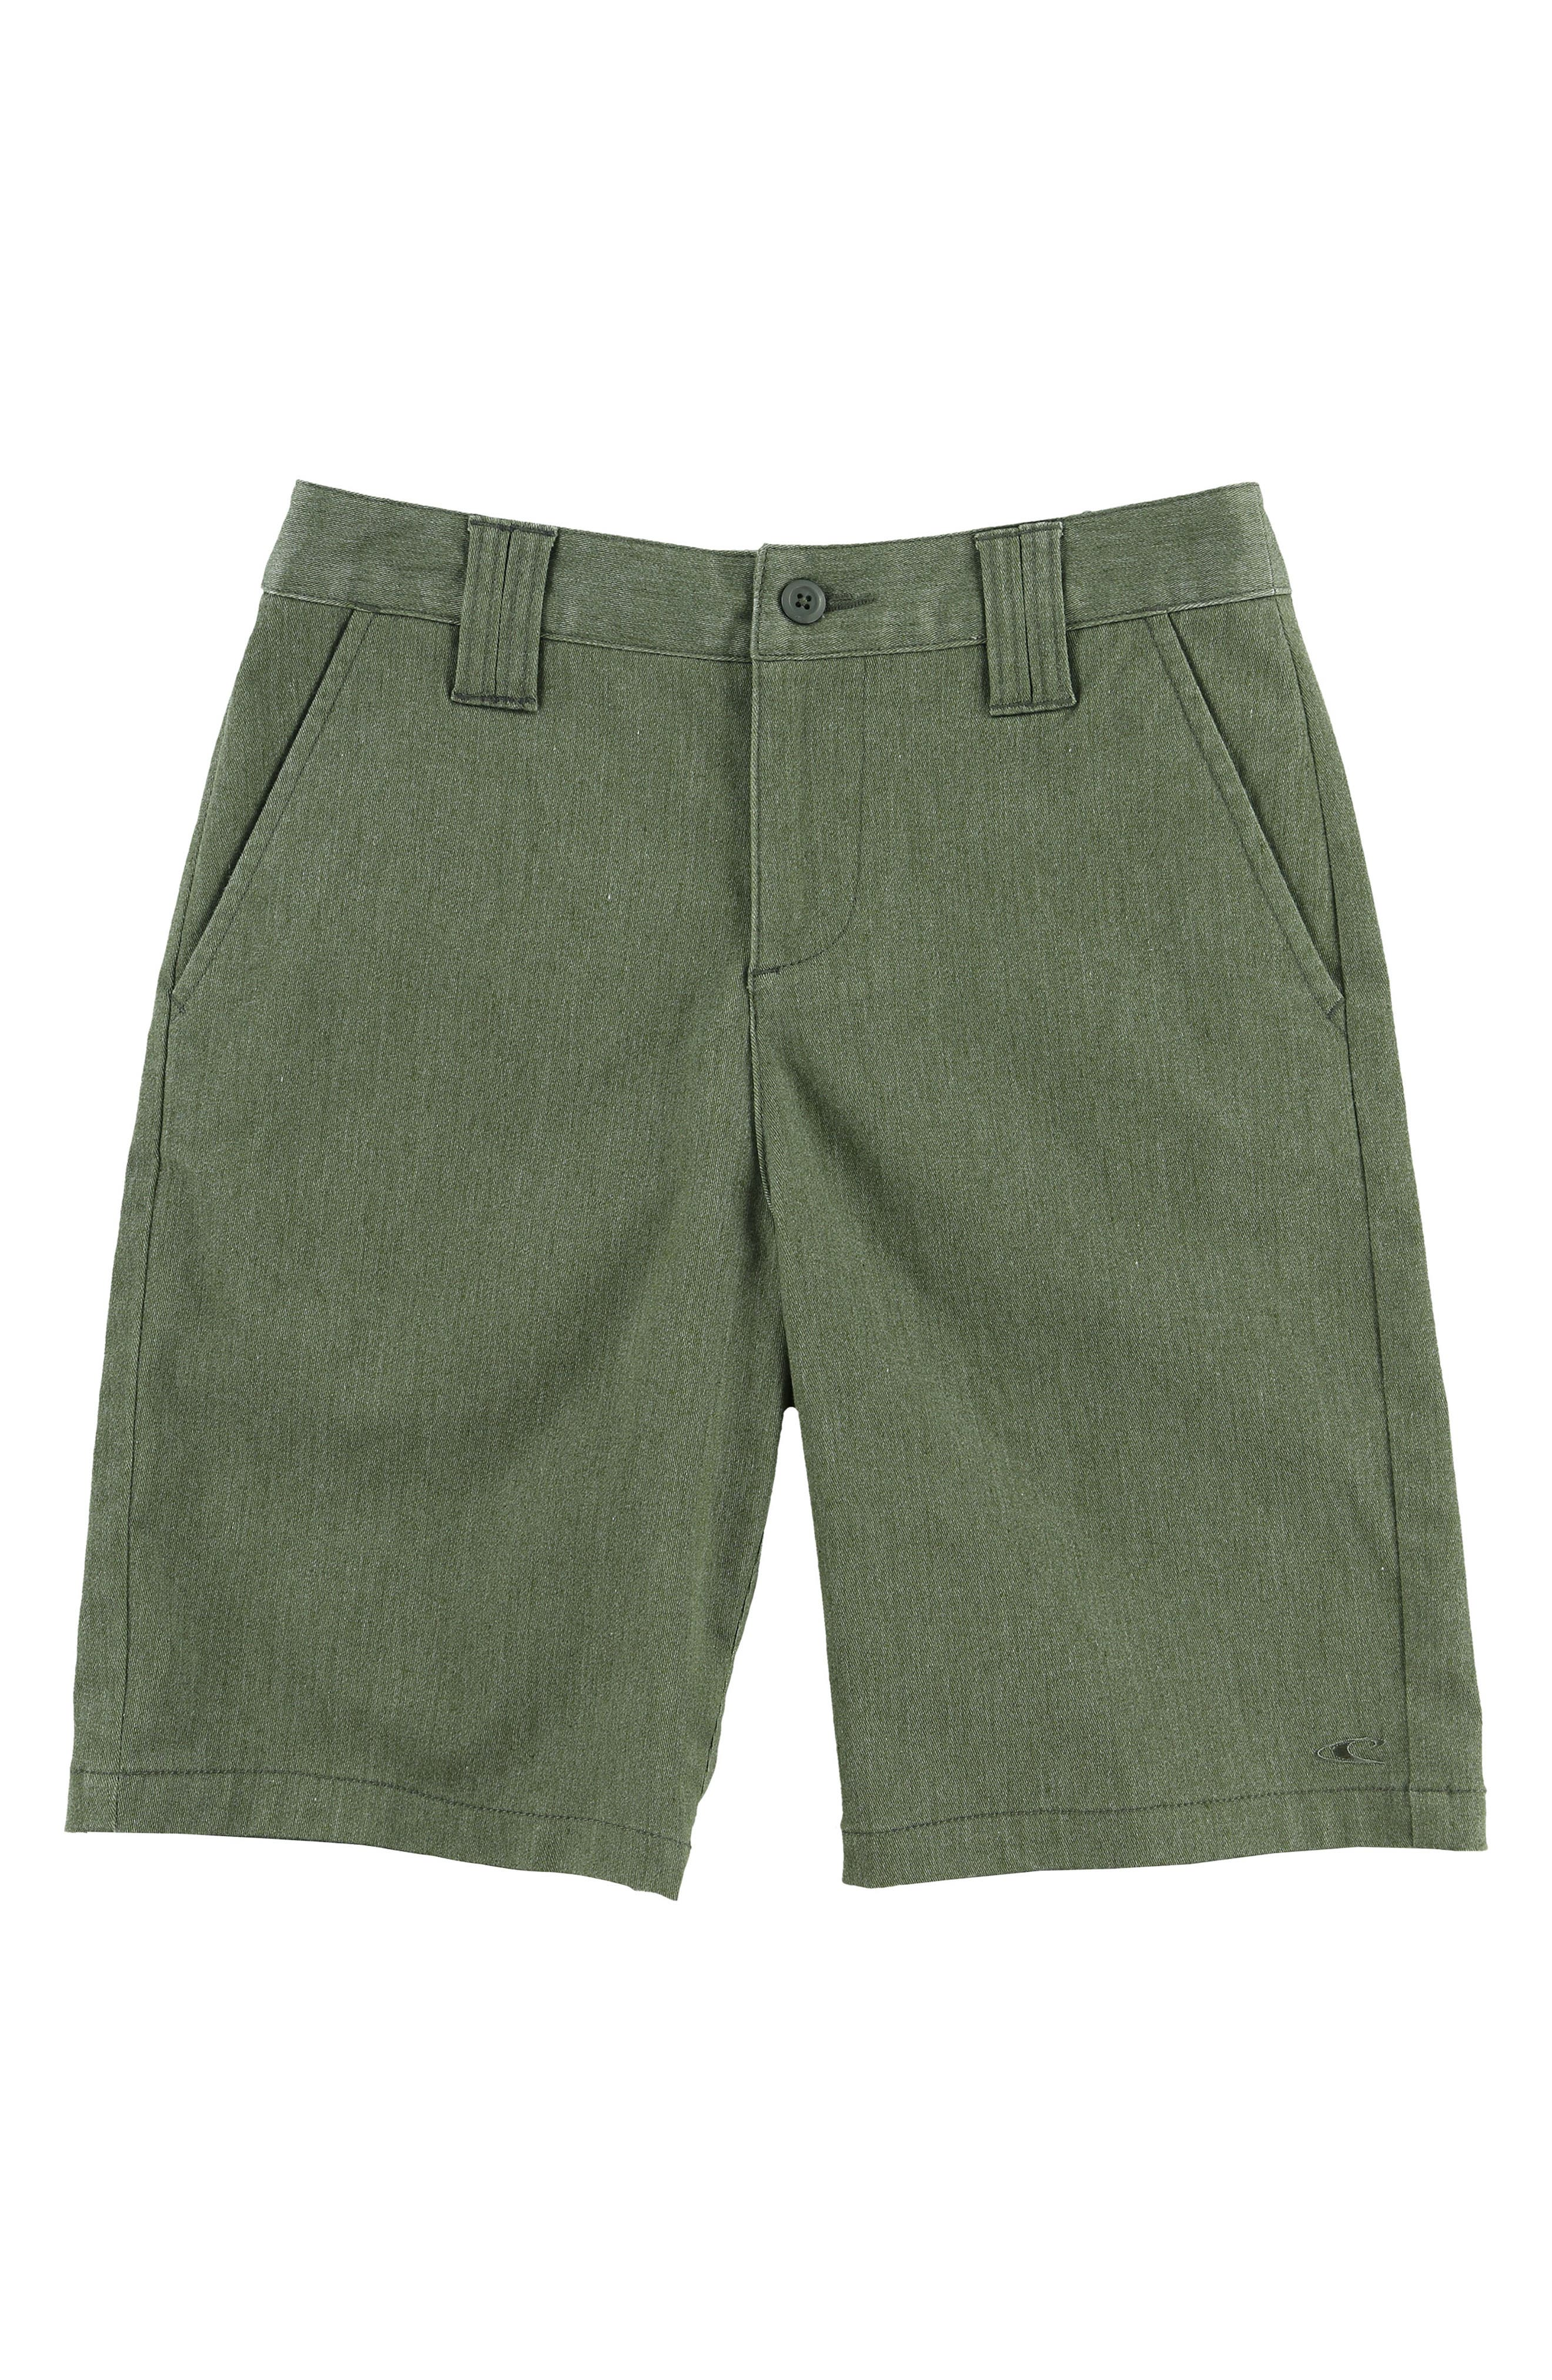 Contact Stretch Shorts,                             Main thumbnail 1, color,                             Army Heather